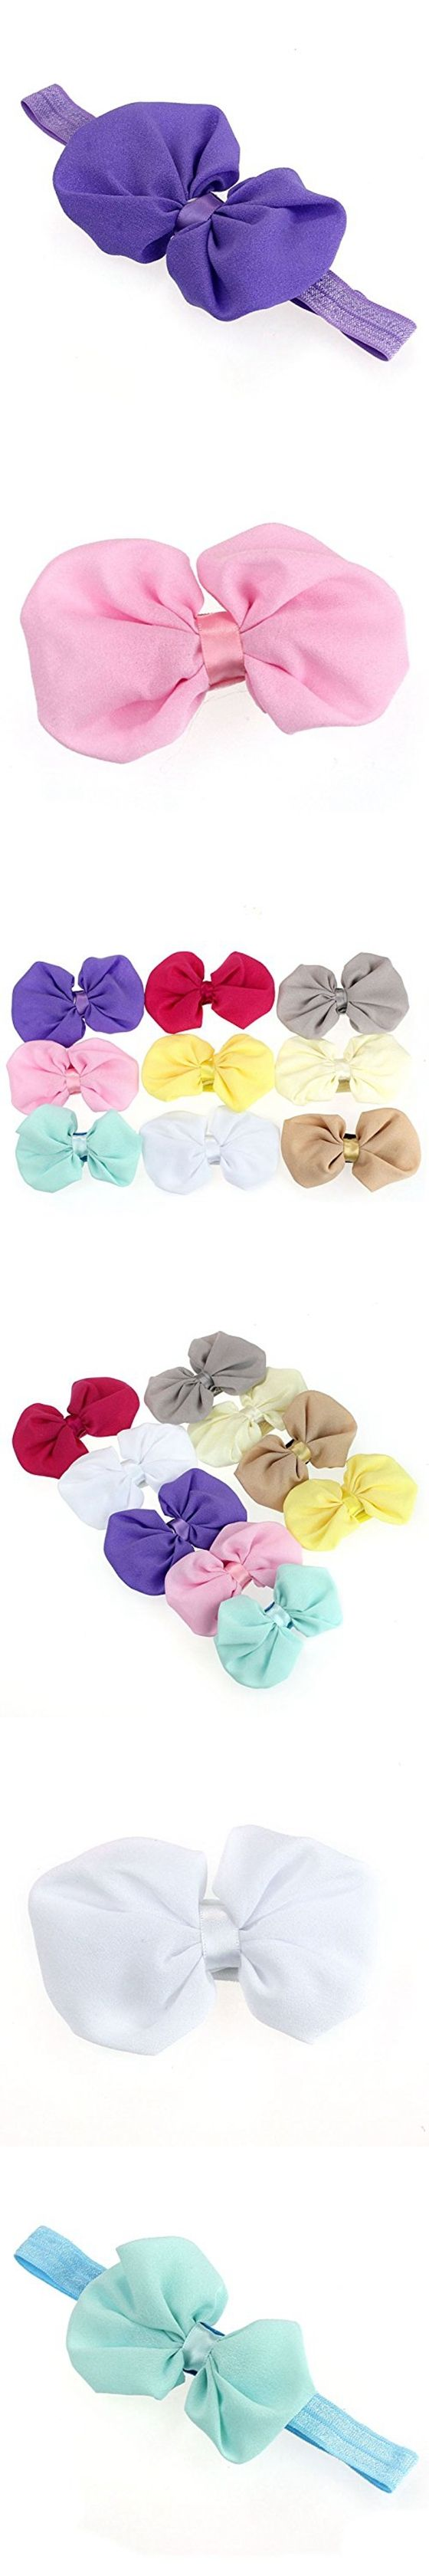 9PCS Babys Girls Chiffon Flower Elastic Headband Photography Headbands